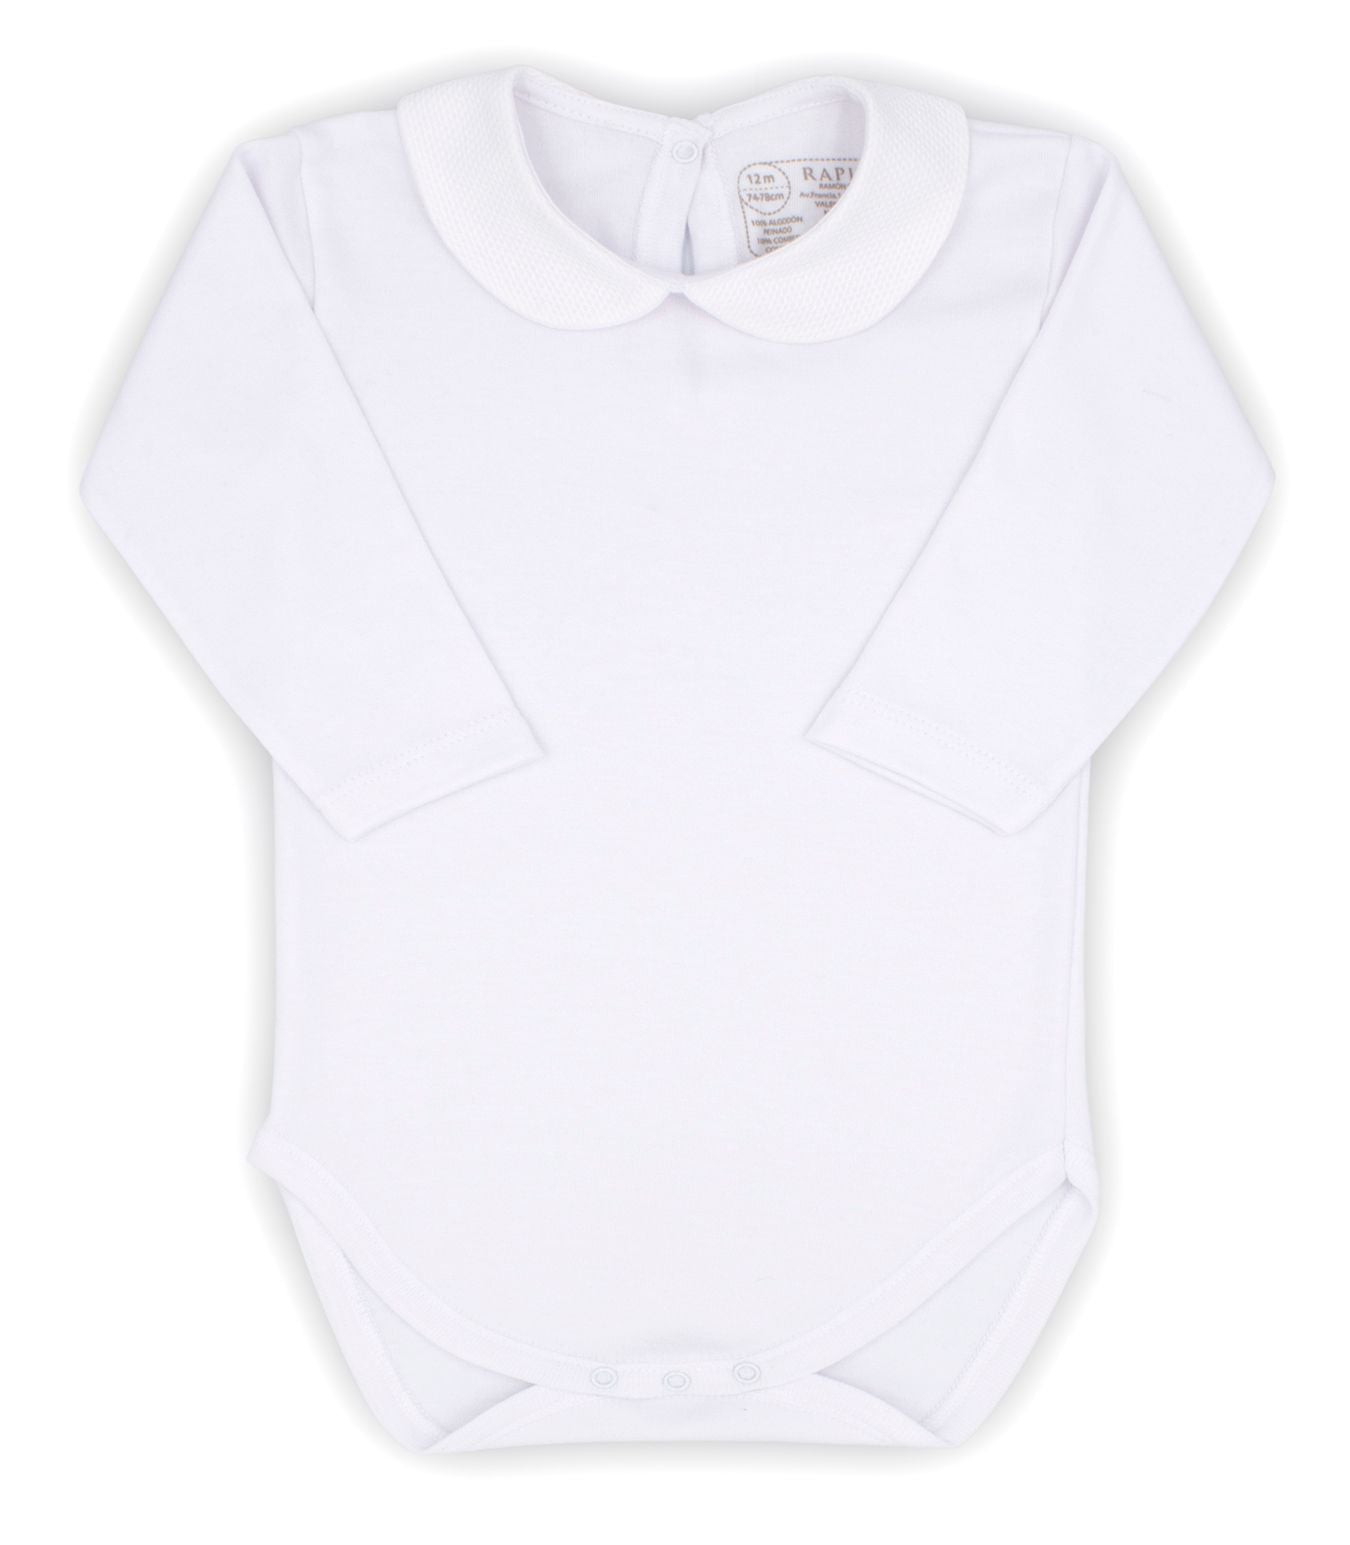 Rapife Baby Unisex White Cotton Body Top Peter Pan Collar